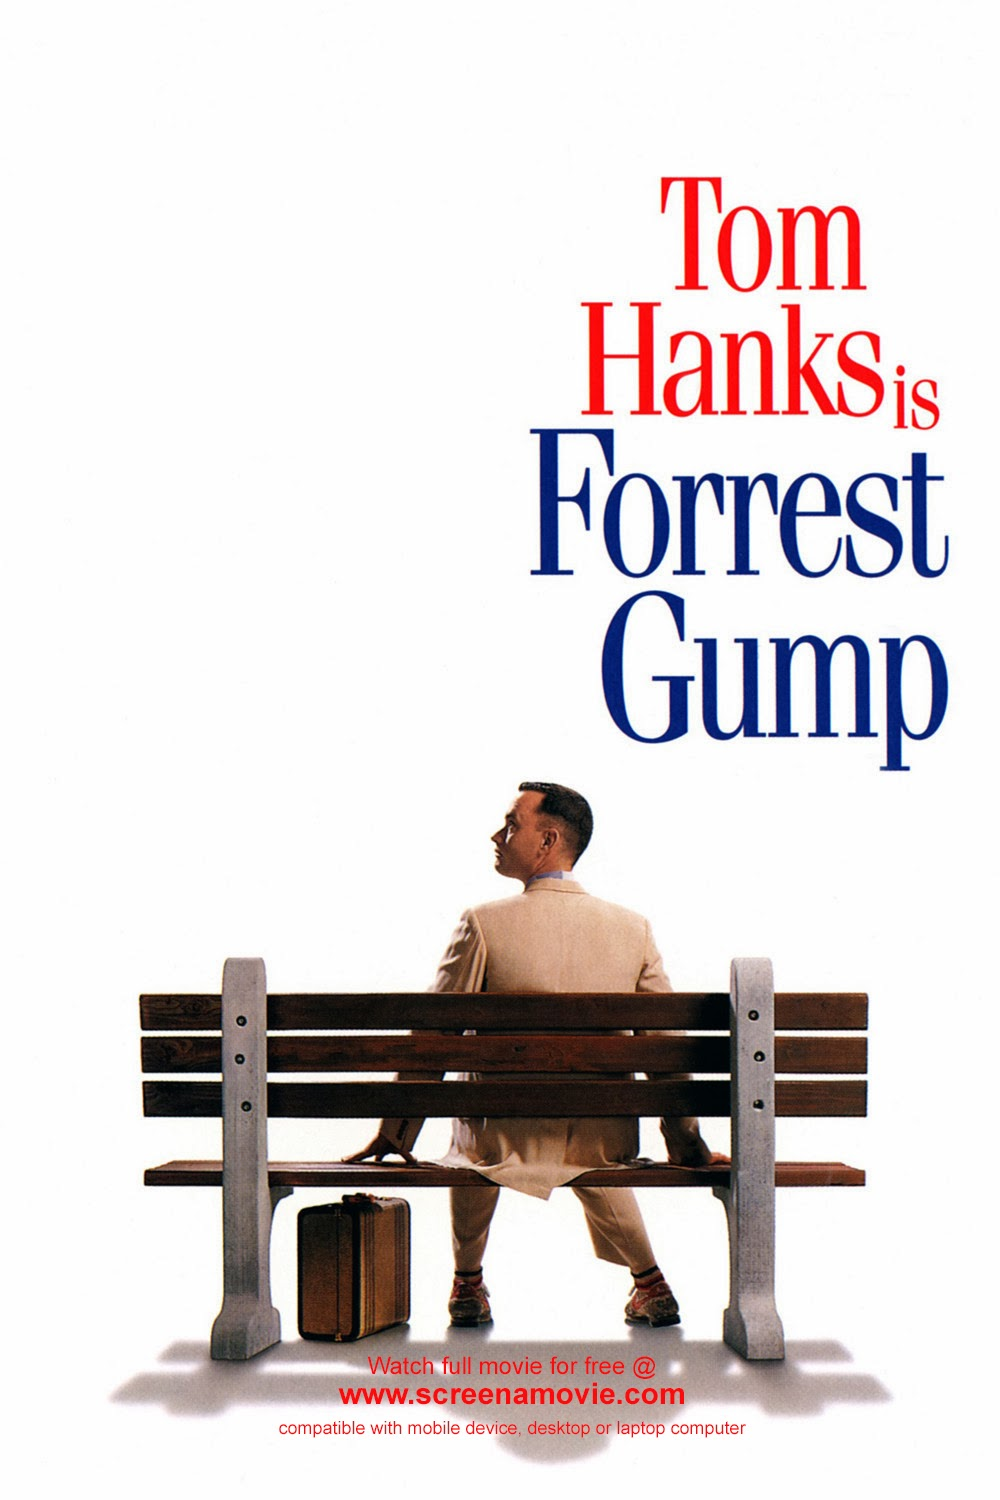 Forrest Gump_@screenamovie